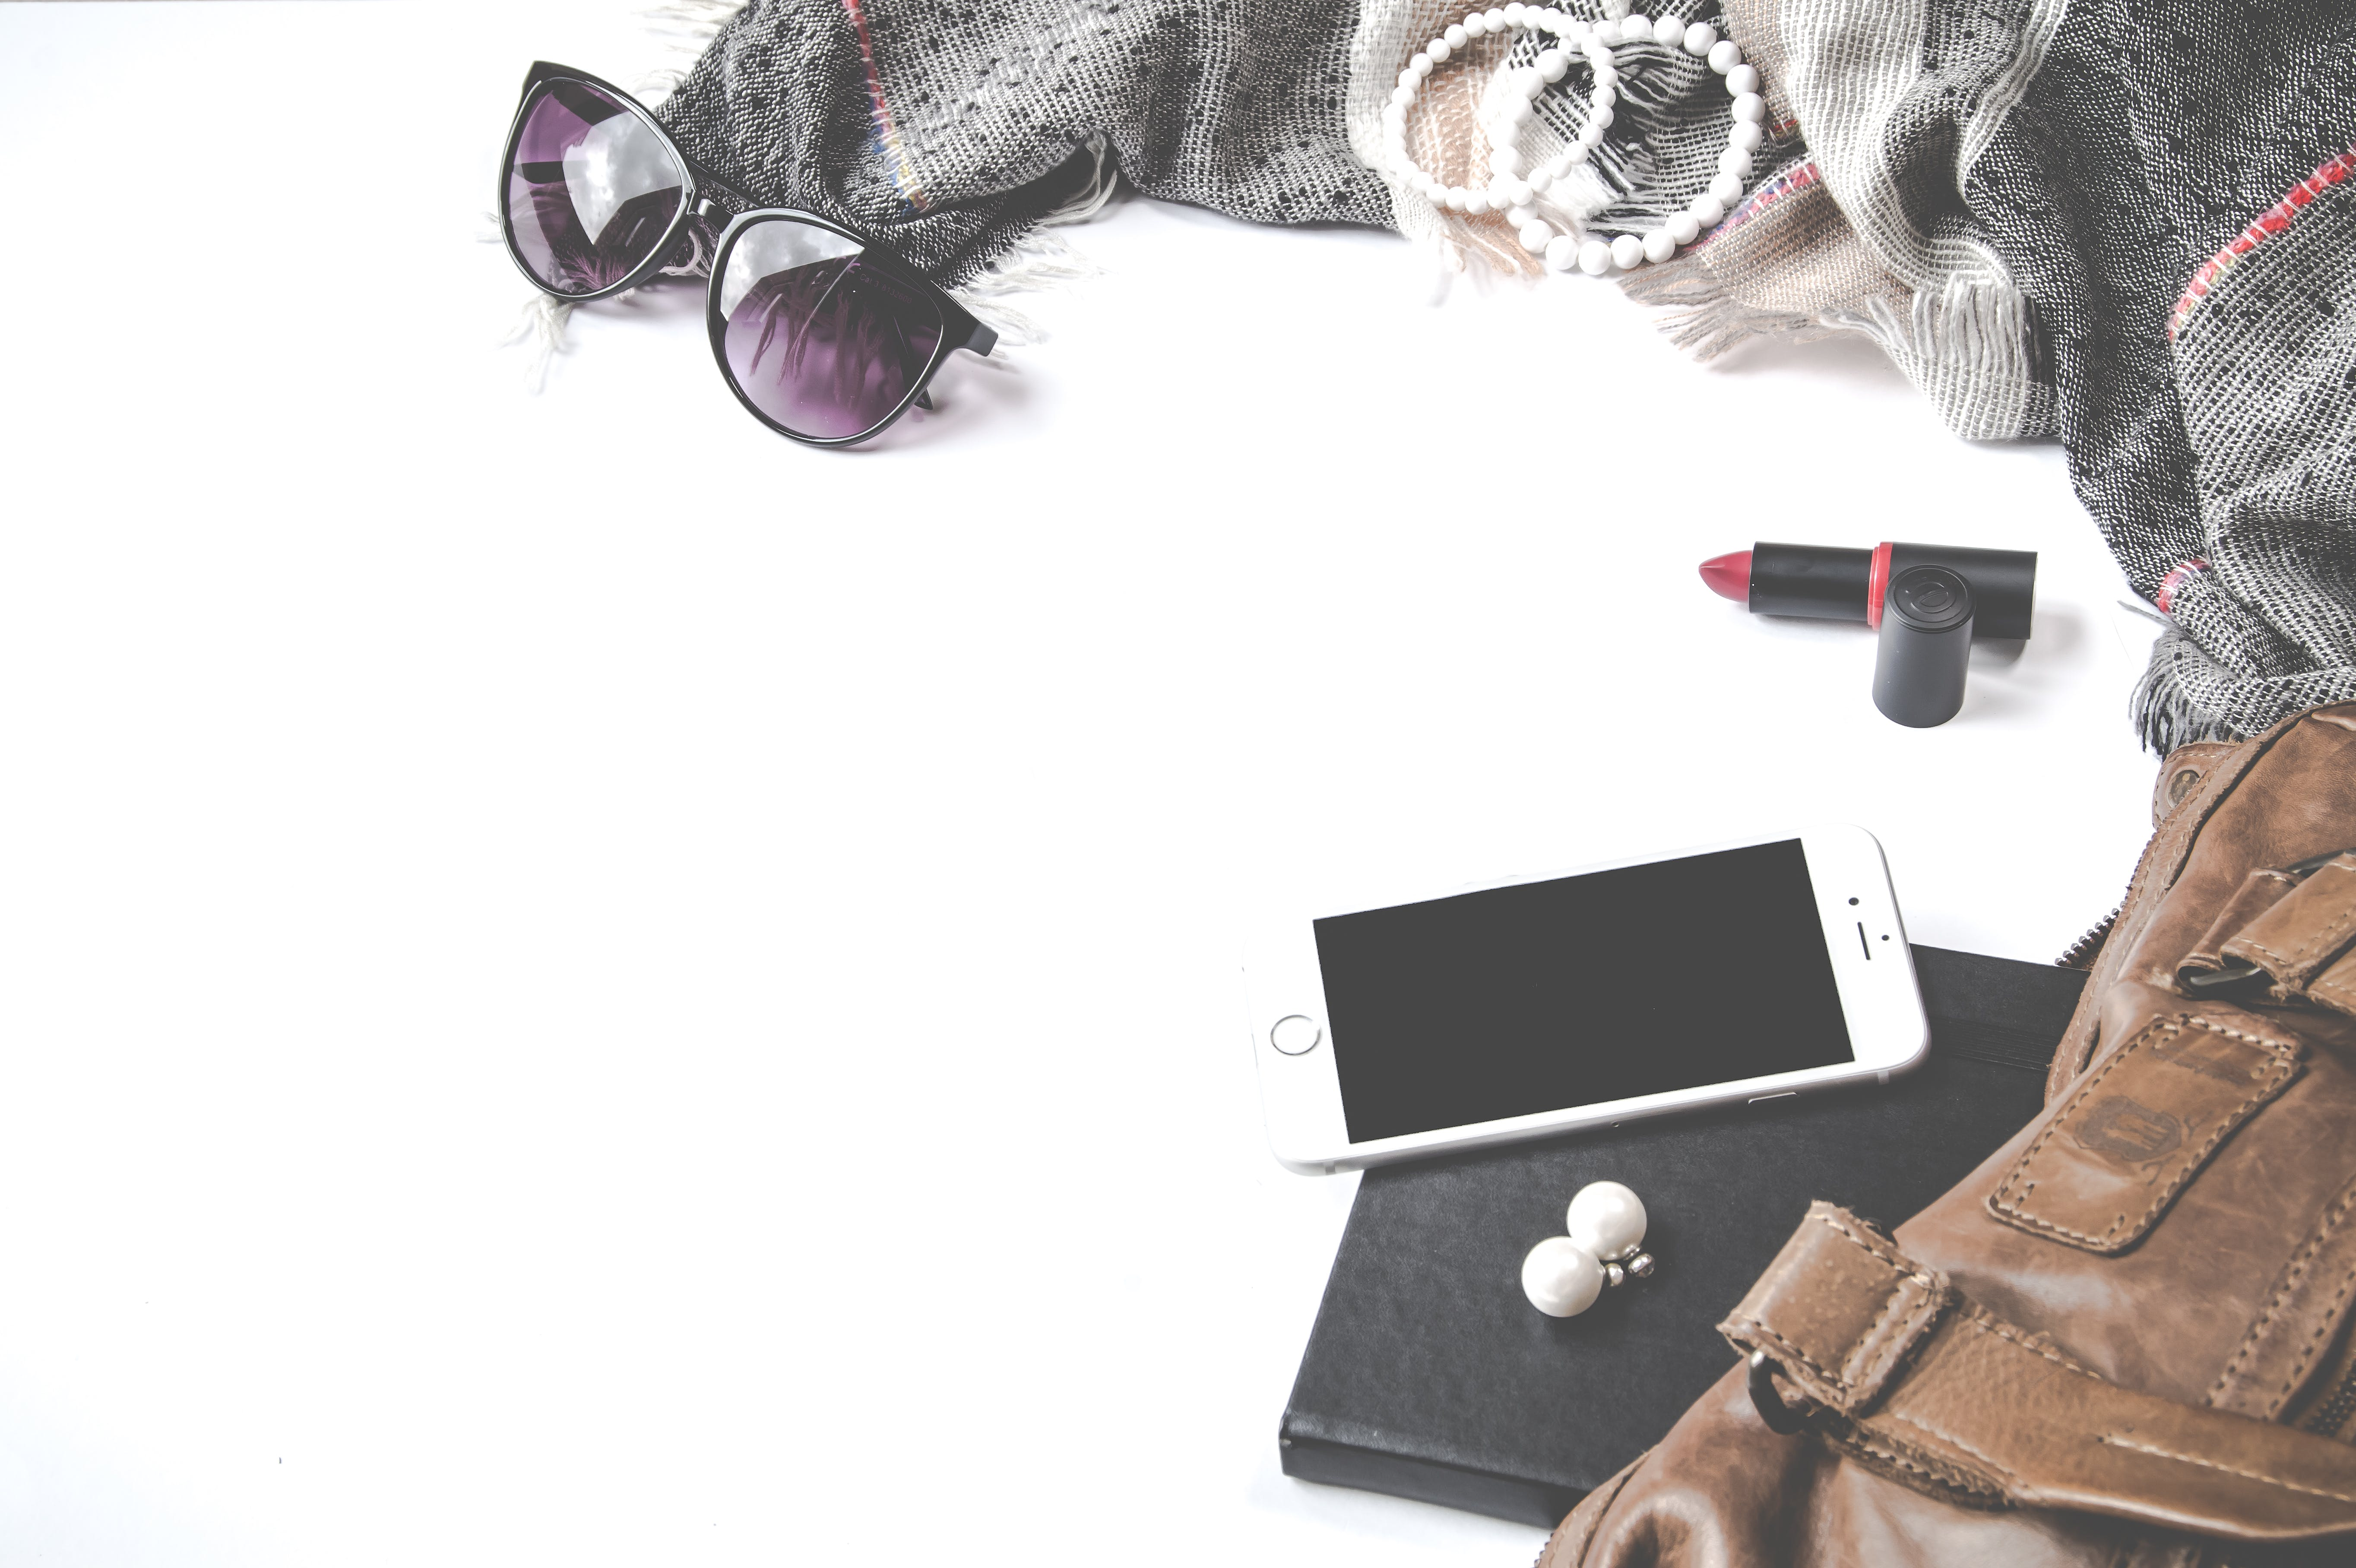 Flatlay Photography of Woman's Things